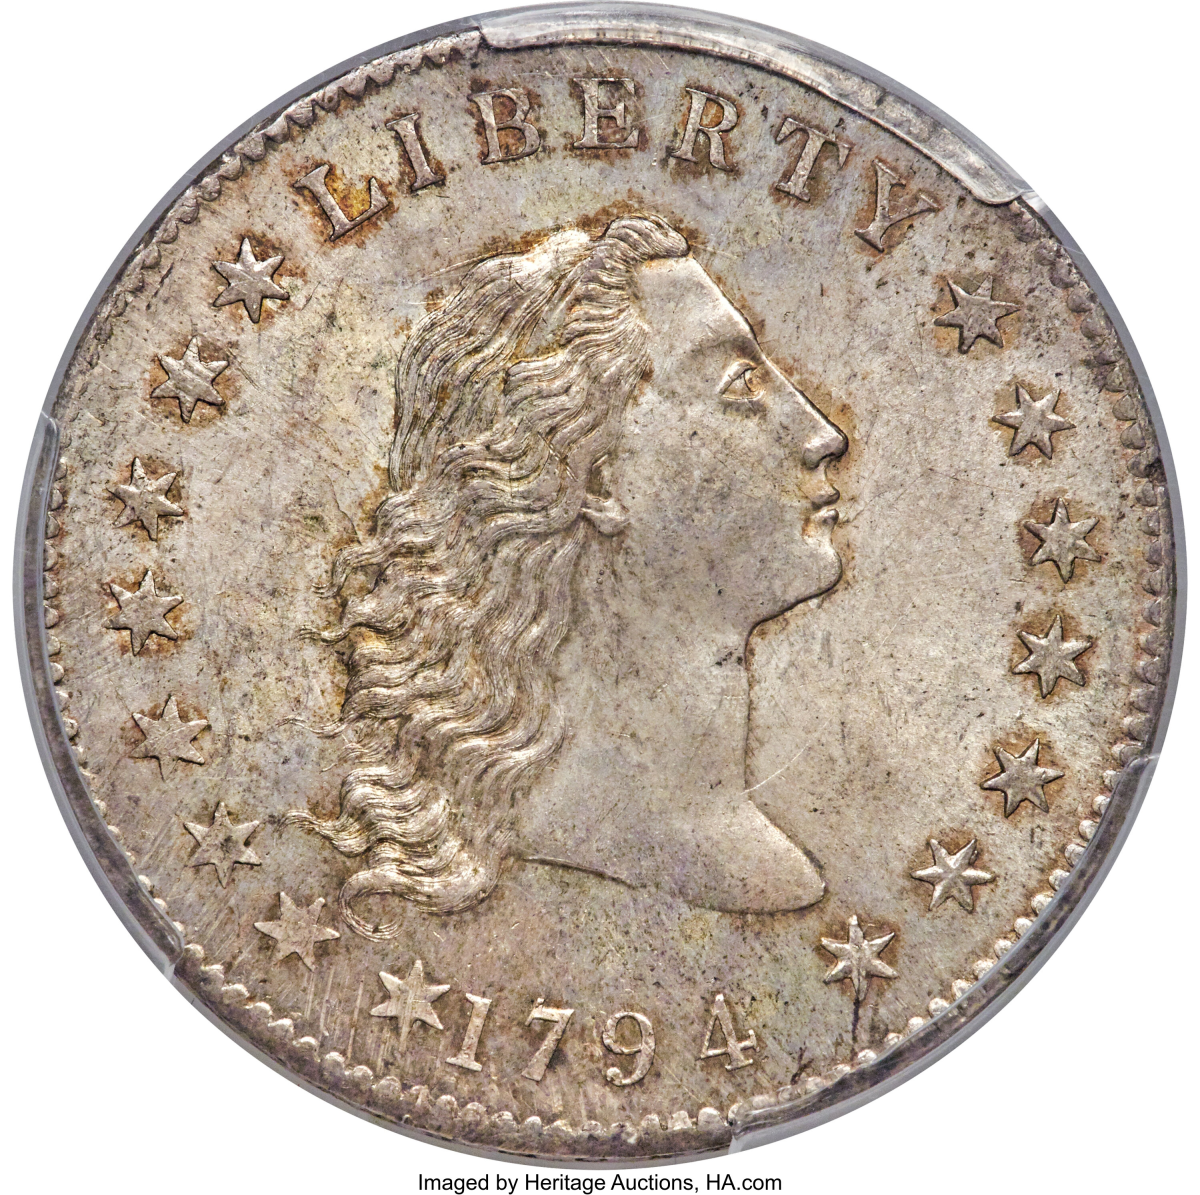 1794 Flowing Hair Silver Dollar, MS66+_Heritage_Auctions